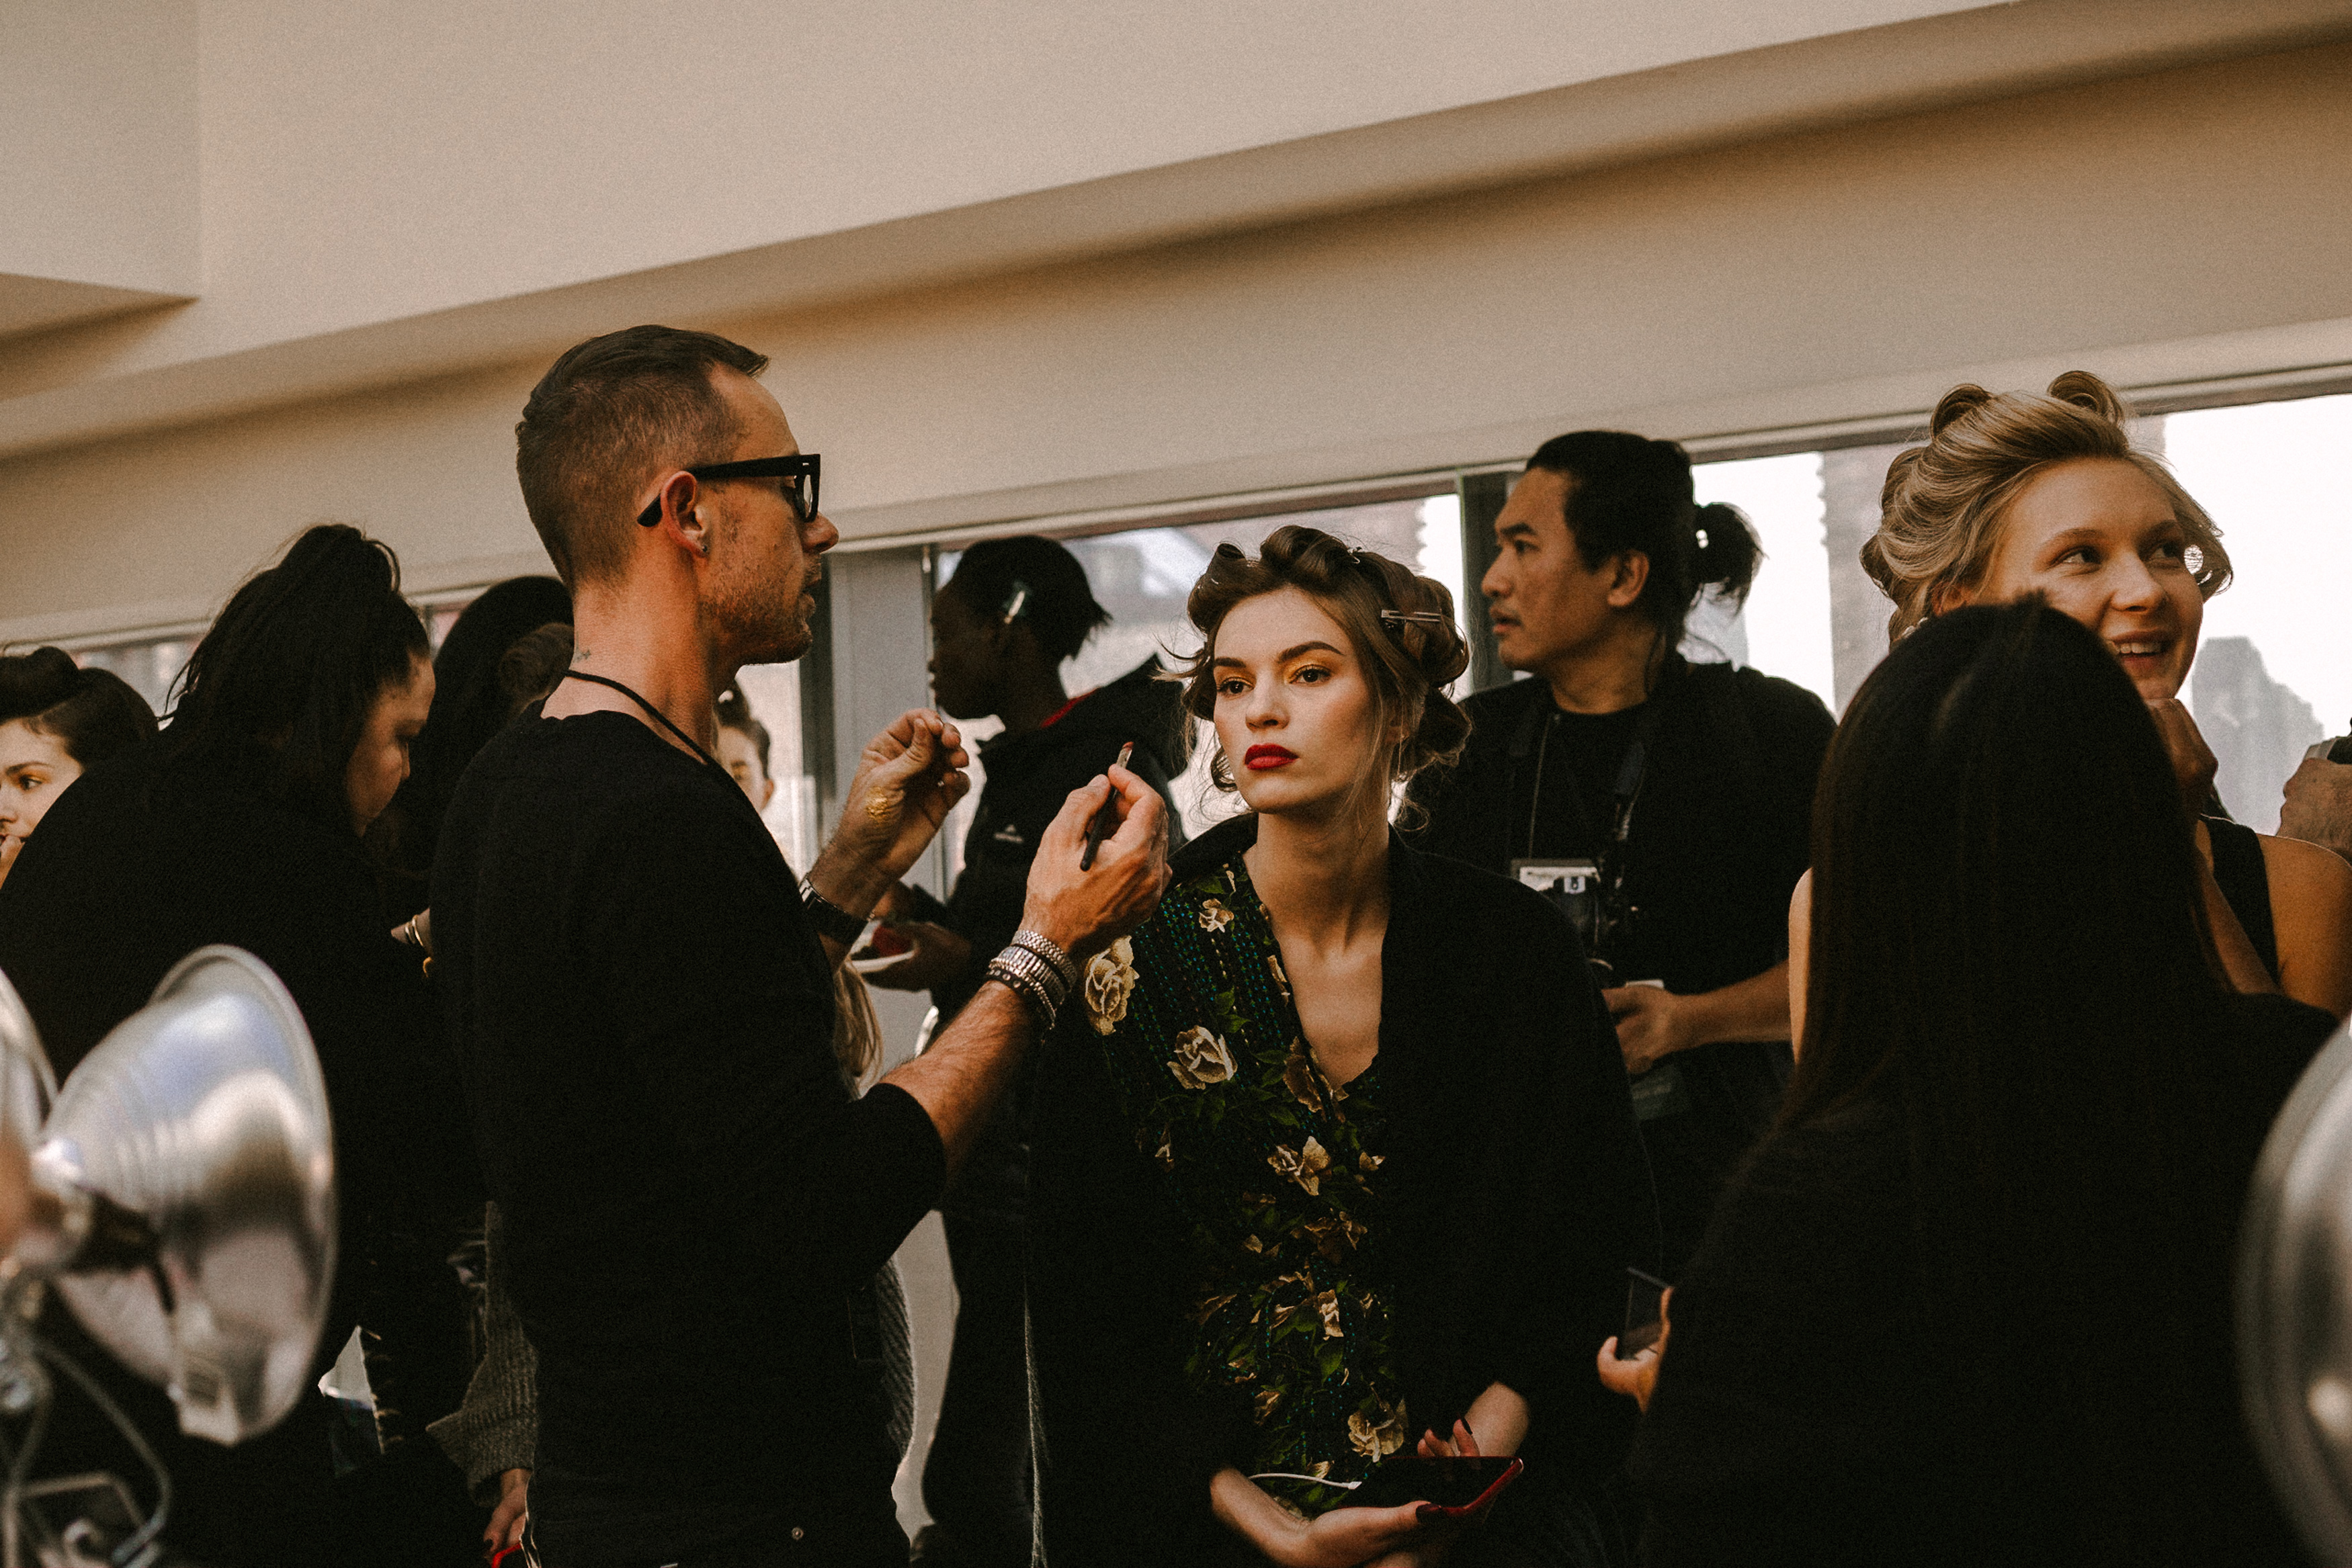 Tadashi Shoji Autumn/Winter 2018 Ready-To-Wear Collection Backstage Access